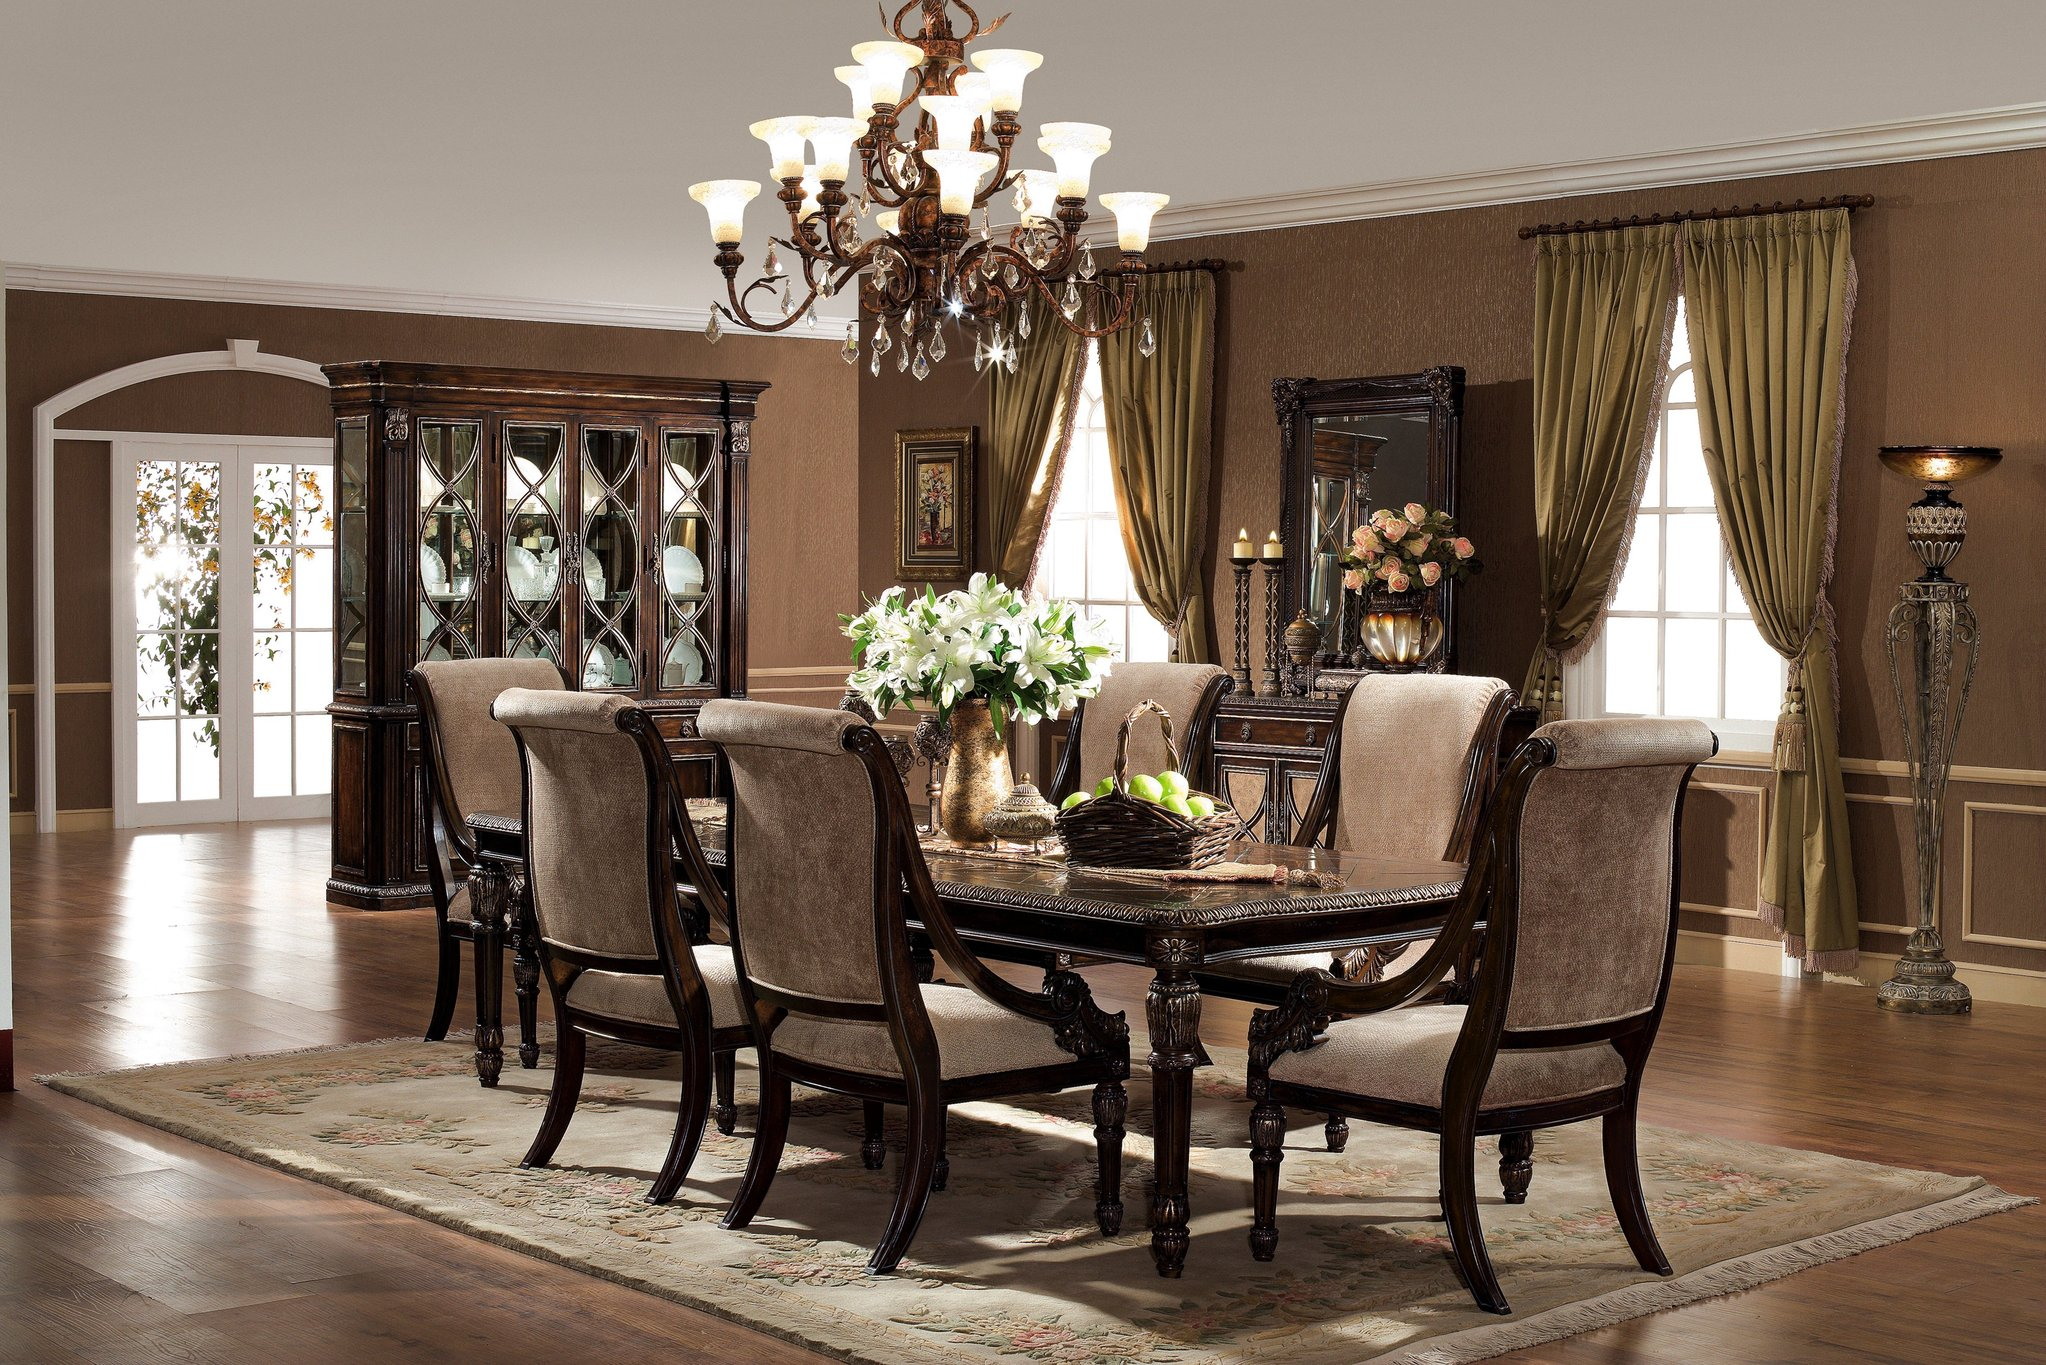 Formal dining room sets with dining room hutch with modern dining chairs with contemporary dining table